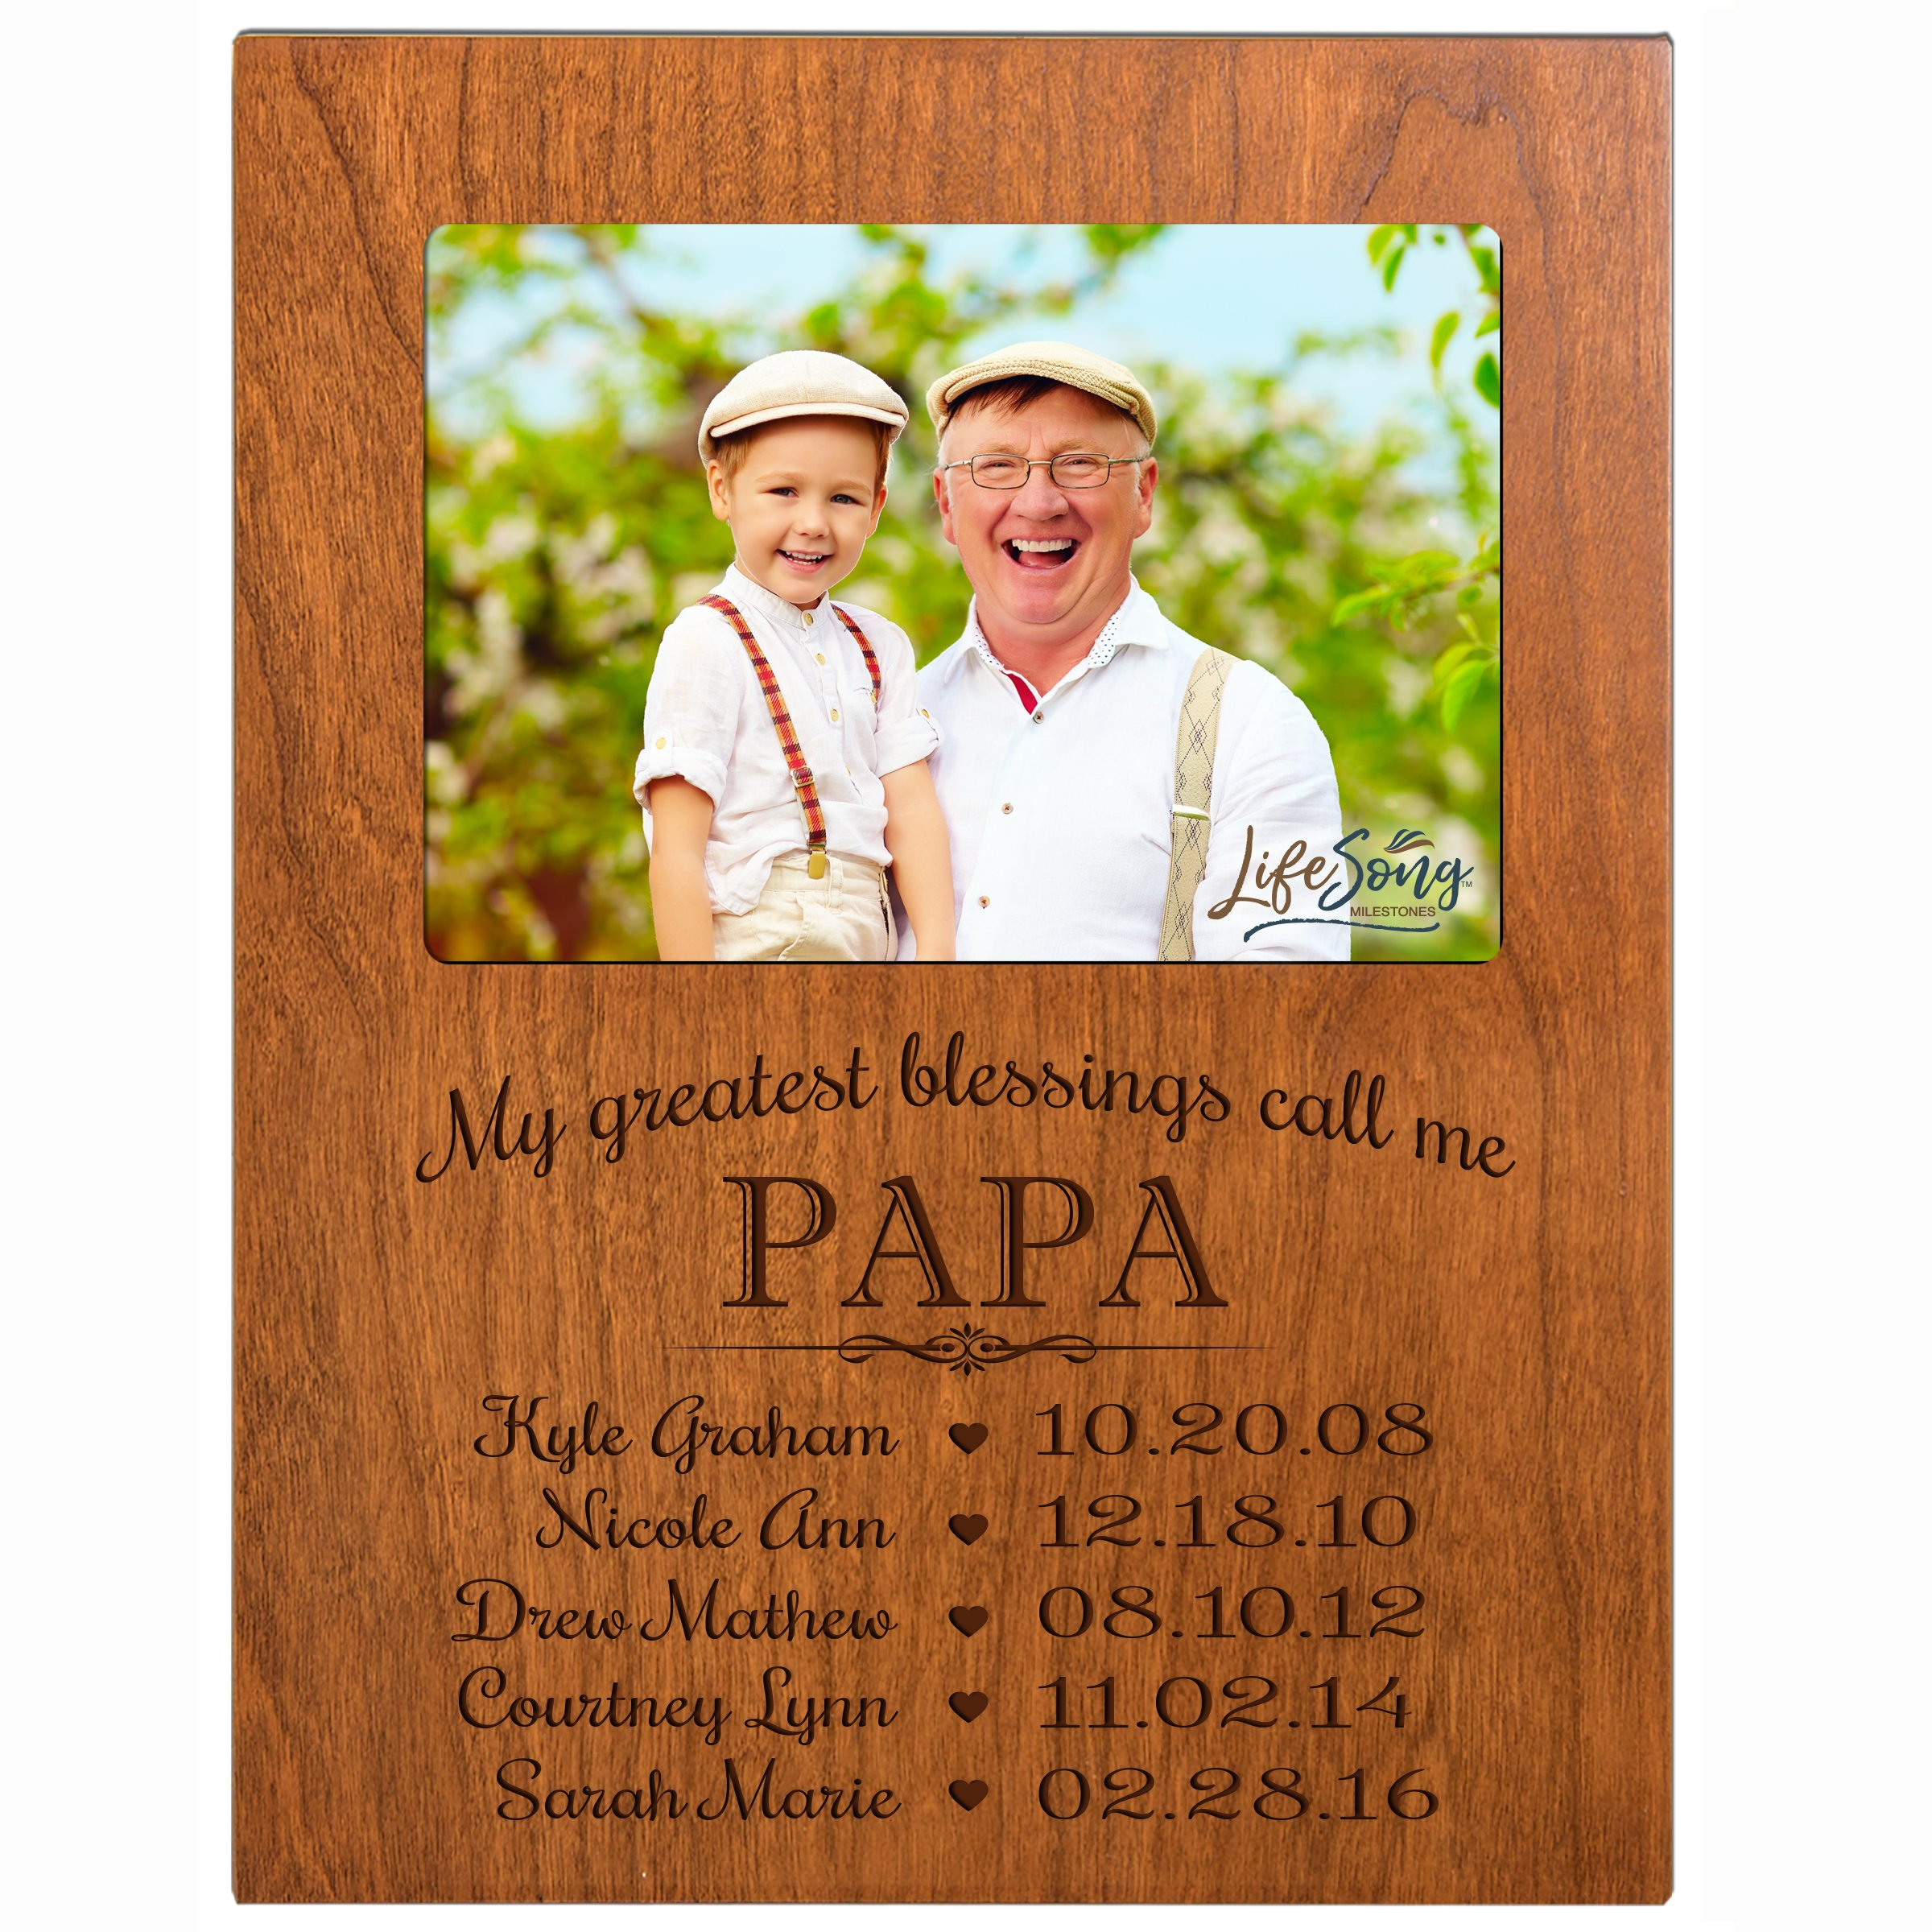 LifeSong Milestones Personalized Gift for Papa Picture Frame with Children's Names and Kid's Birth Date Special Dates My Greatest Blessings Call me Papa Holds 4x6 Photo (Cherry)